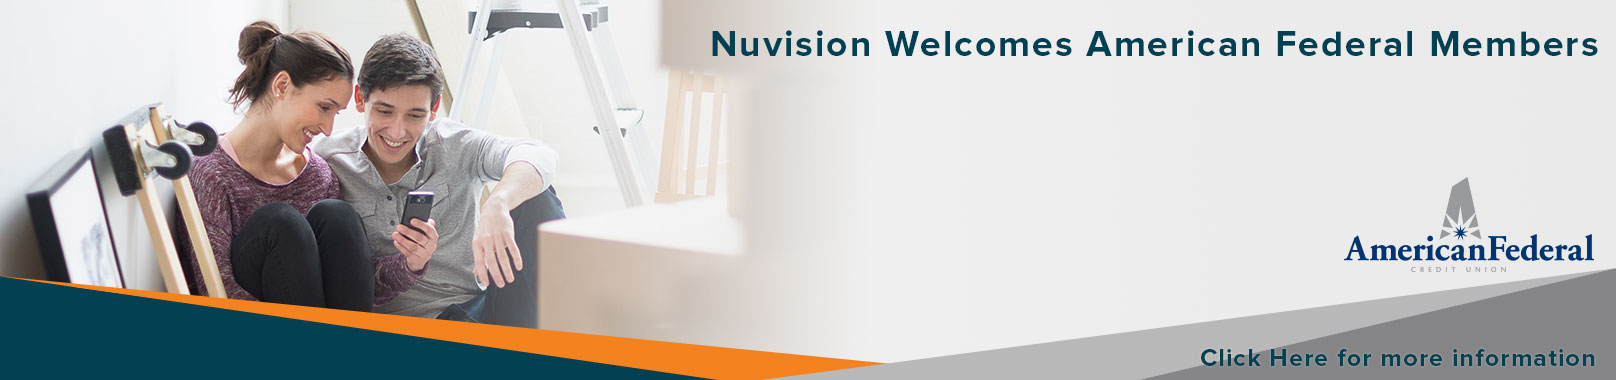 Nuvision Welcomes American Federal Members